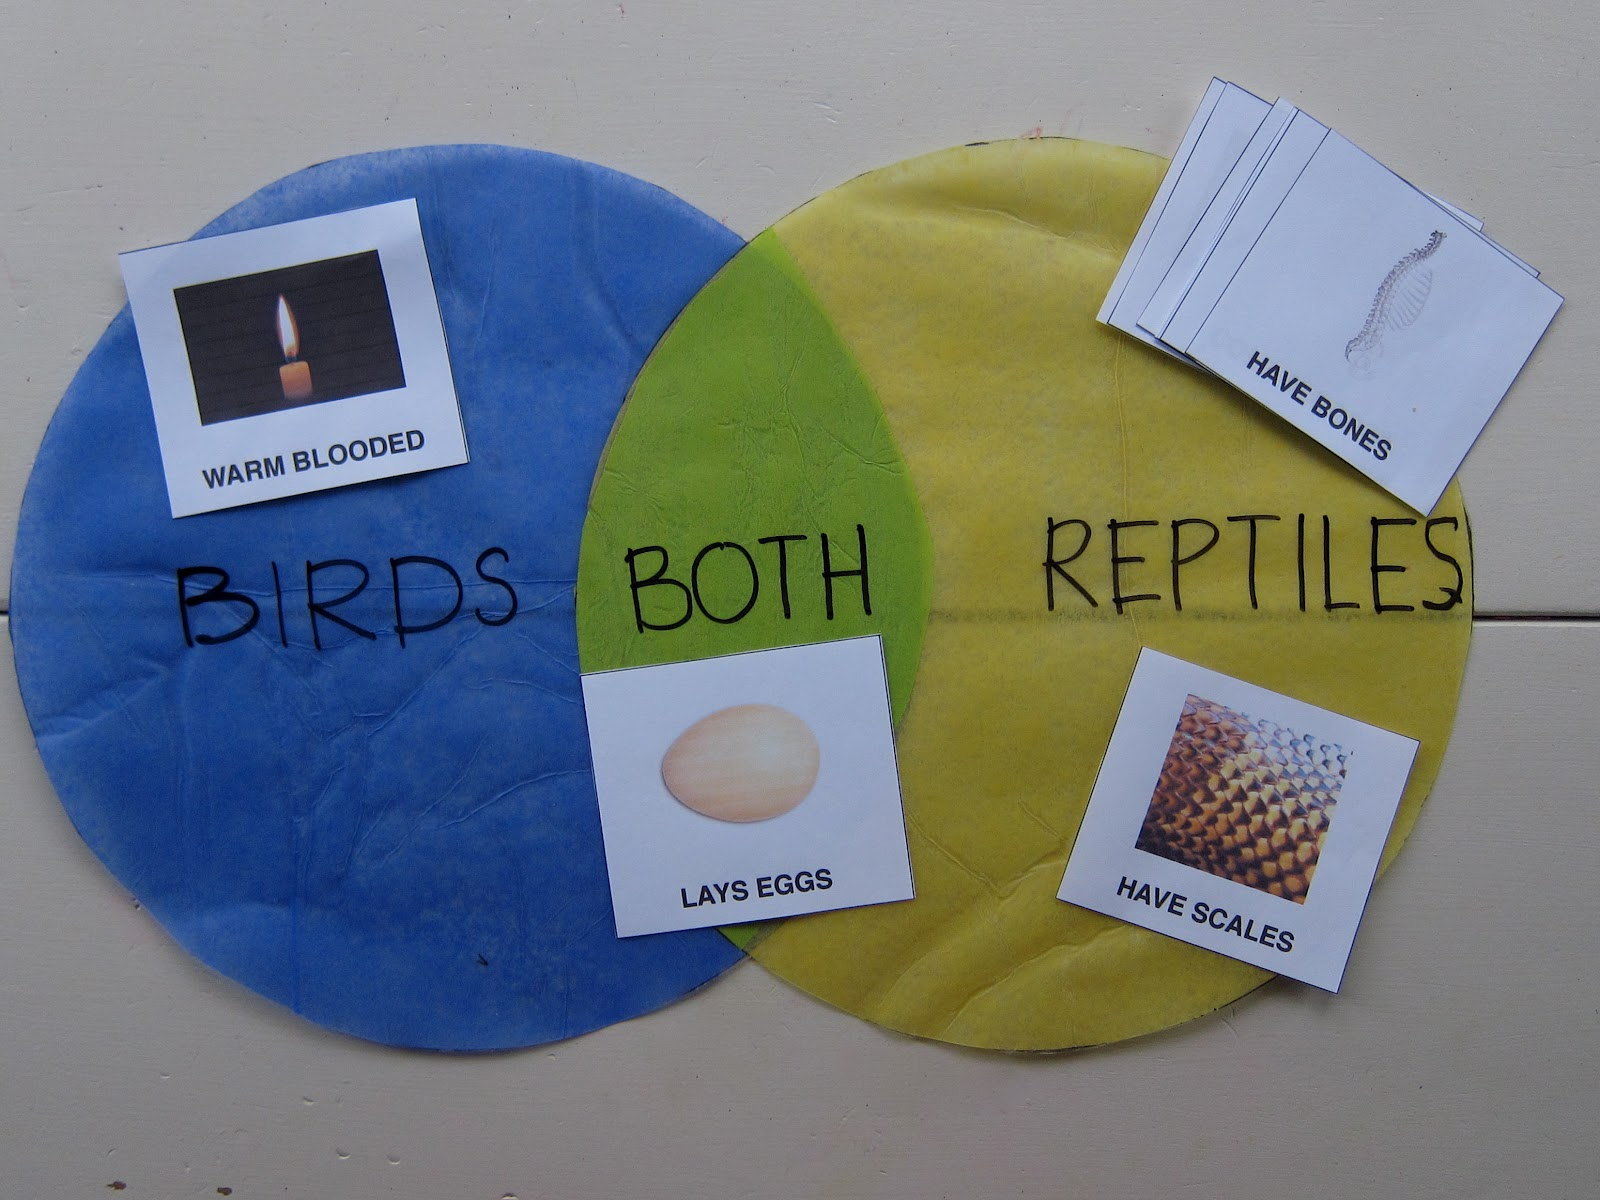 bird reptile venn diagram skills practiced classification scientific knowledge comparing i have made the cards pdf available here [ 1600 x 1200 Pixel ]